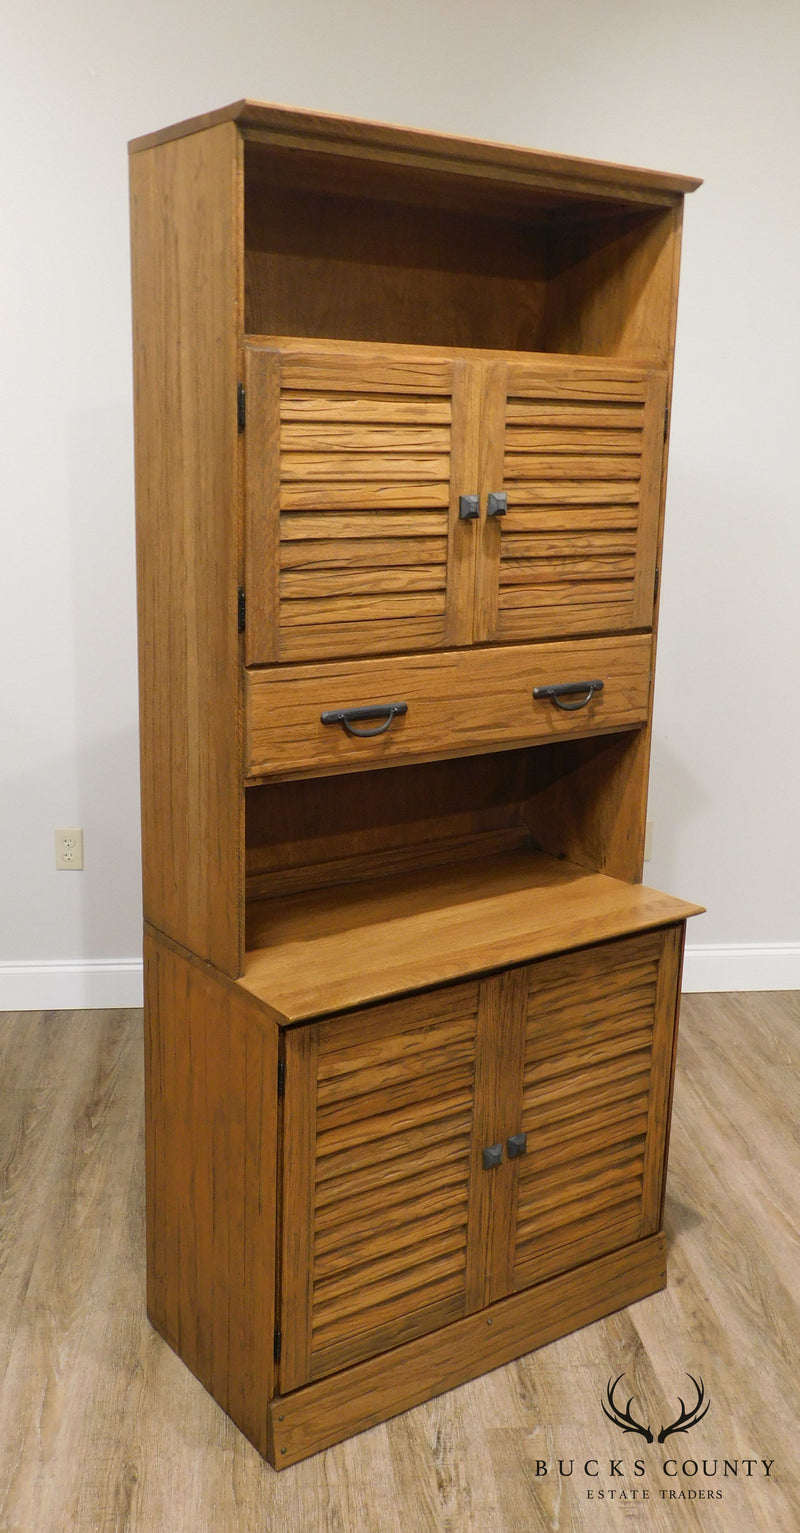 Brandt Ranch Oak Vintage 2 Piece Cabinet with Louvered Doors